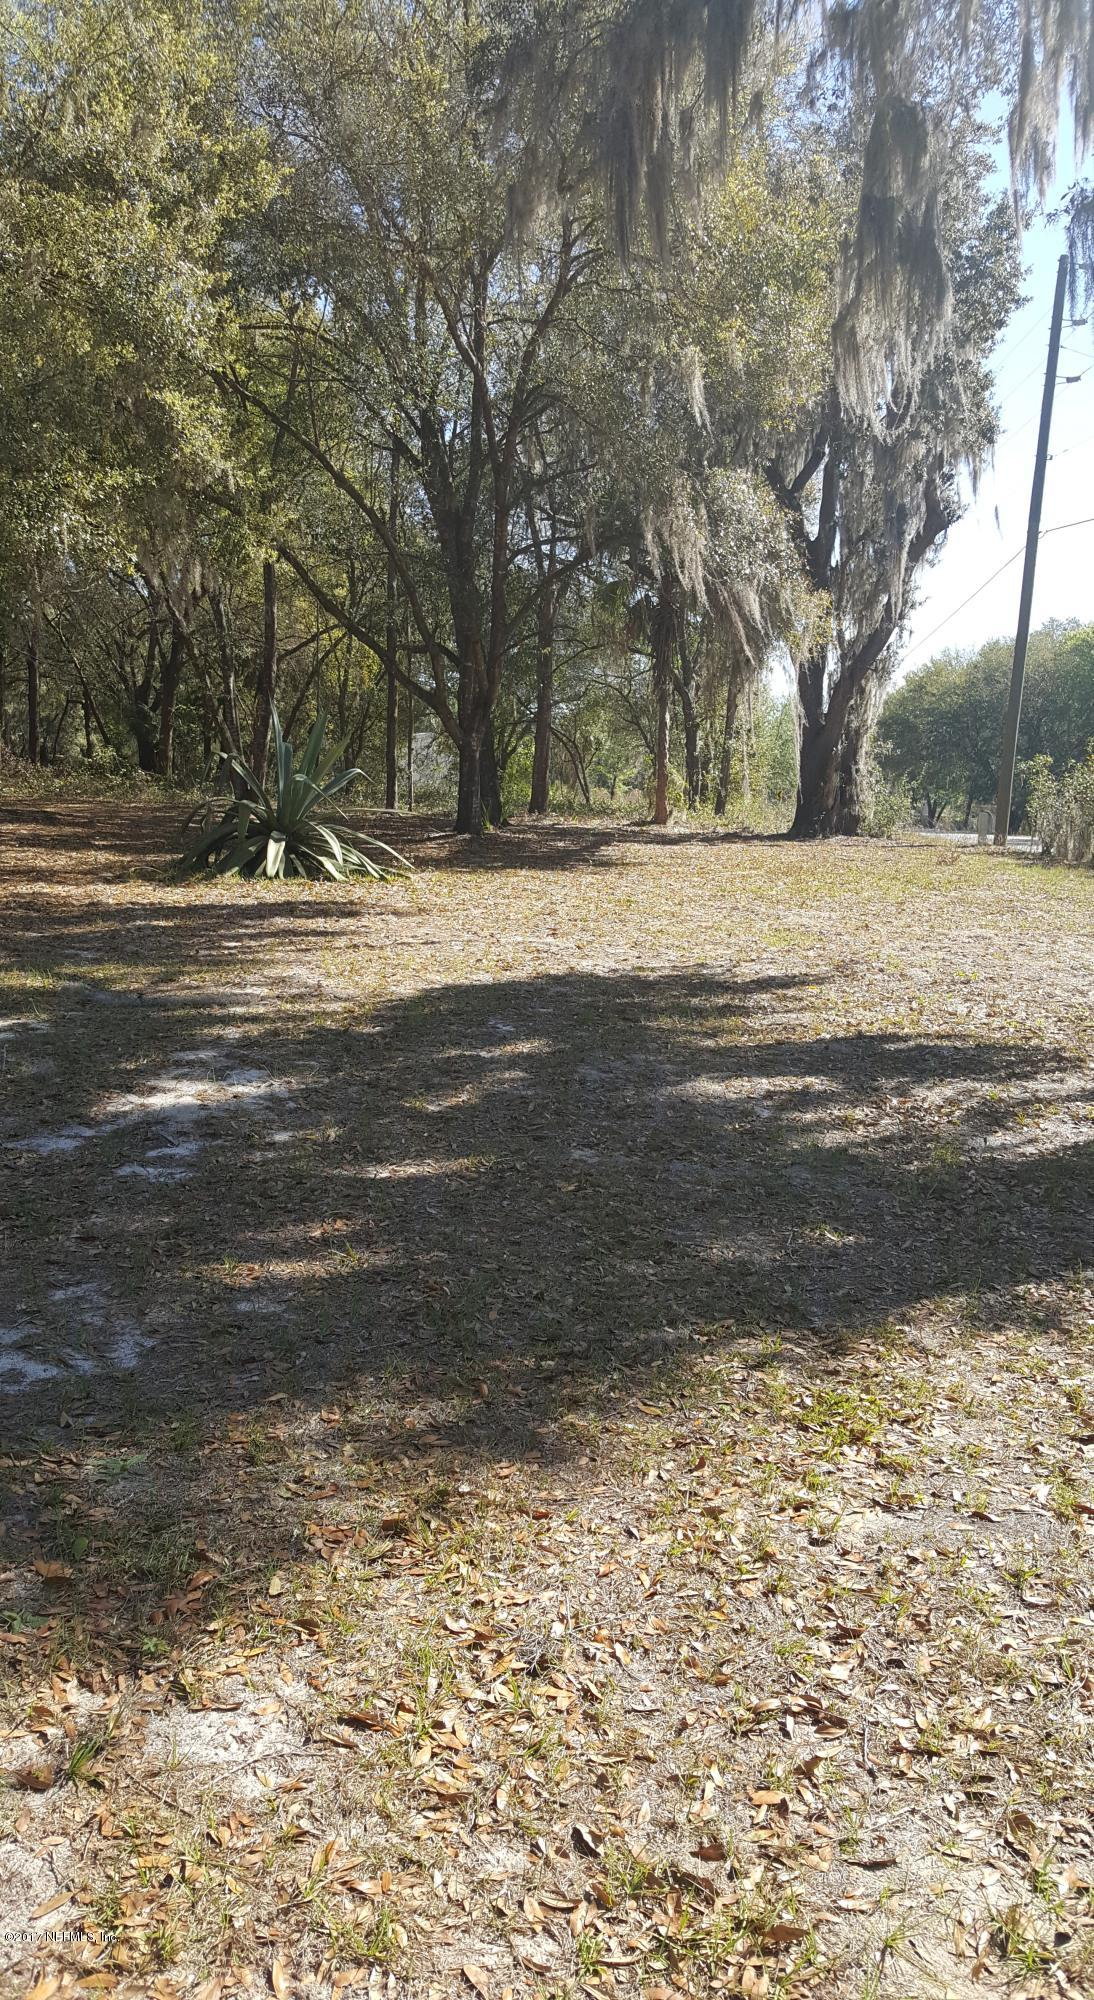 245 ASHLEY, HAWTHORNE, FLORIDA 32640, ,Vacant land,For sale,ASHLEY,870294